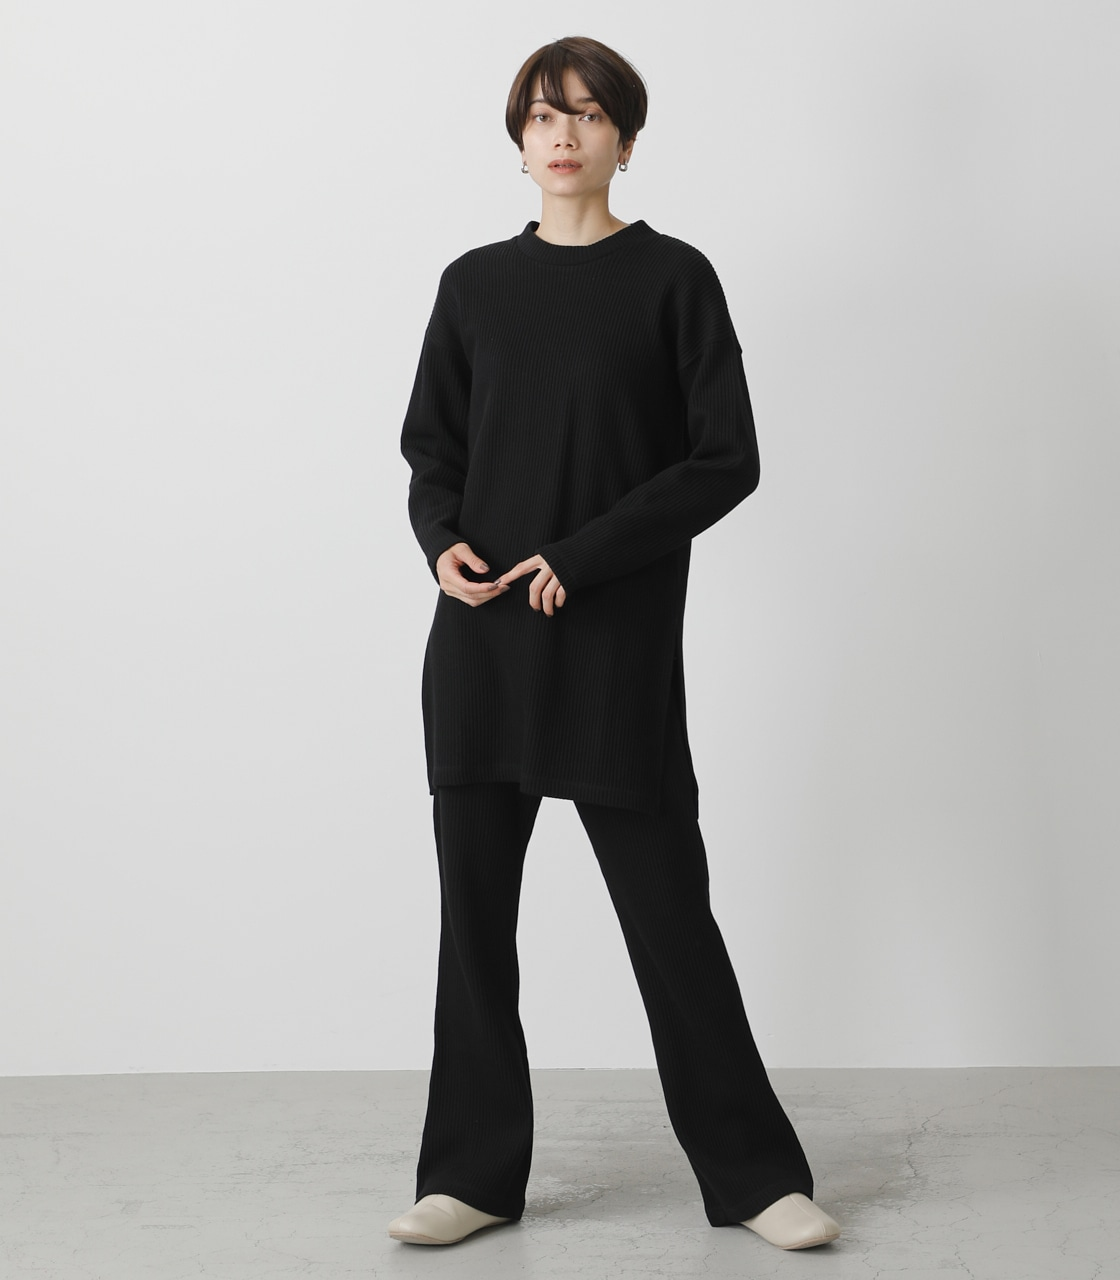 T/H SIDE SLIT LONG TOPS/T/Hサイドスリットロングトップス 詳細画像 BLK 4